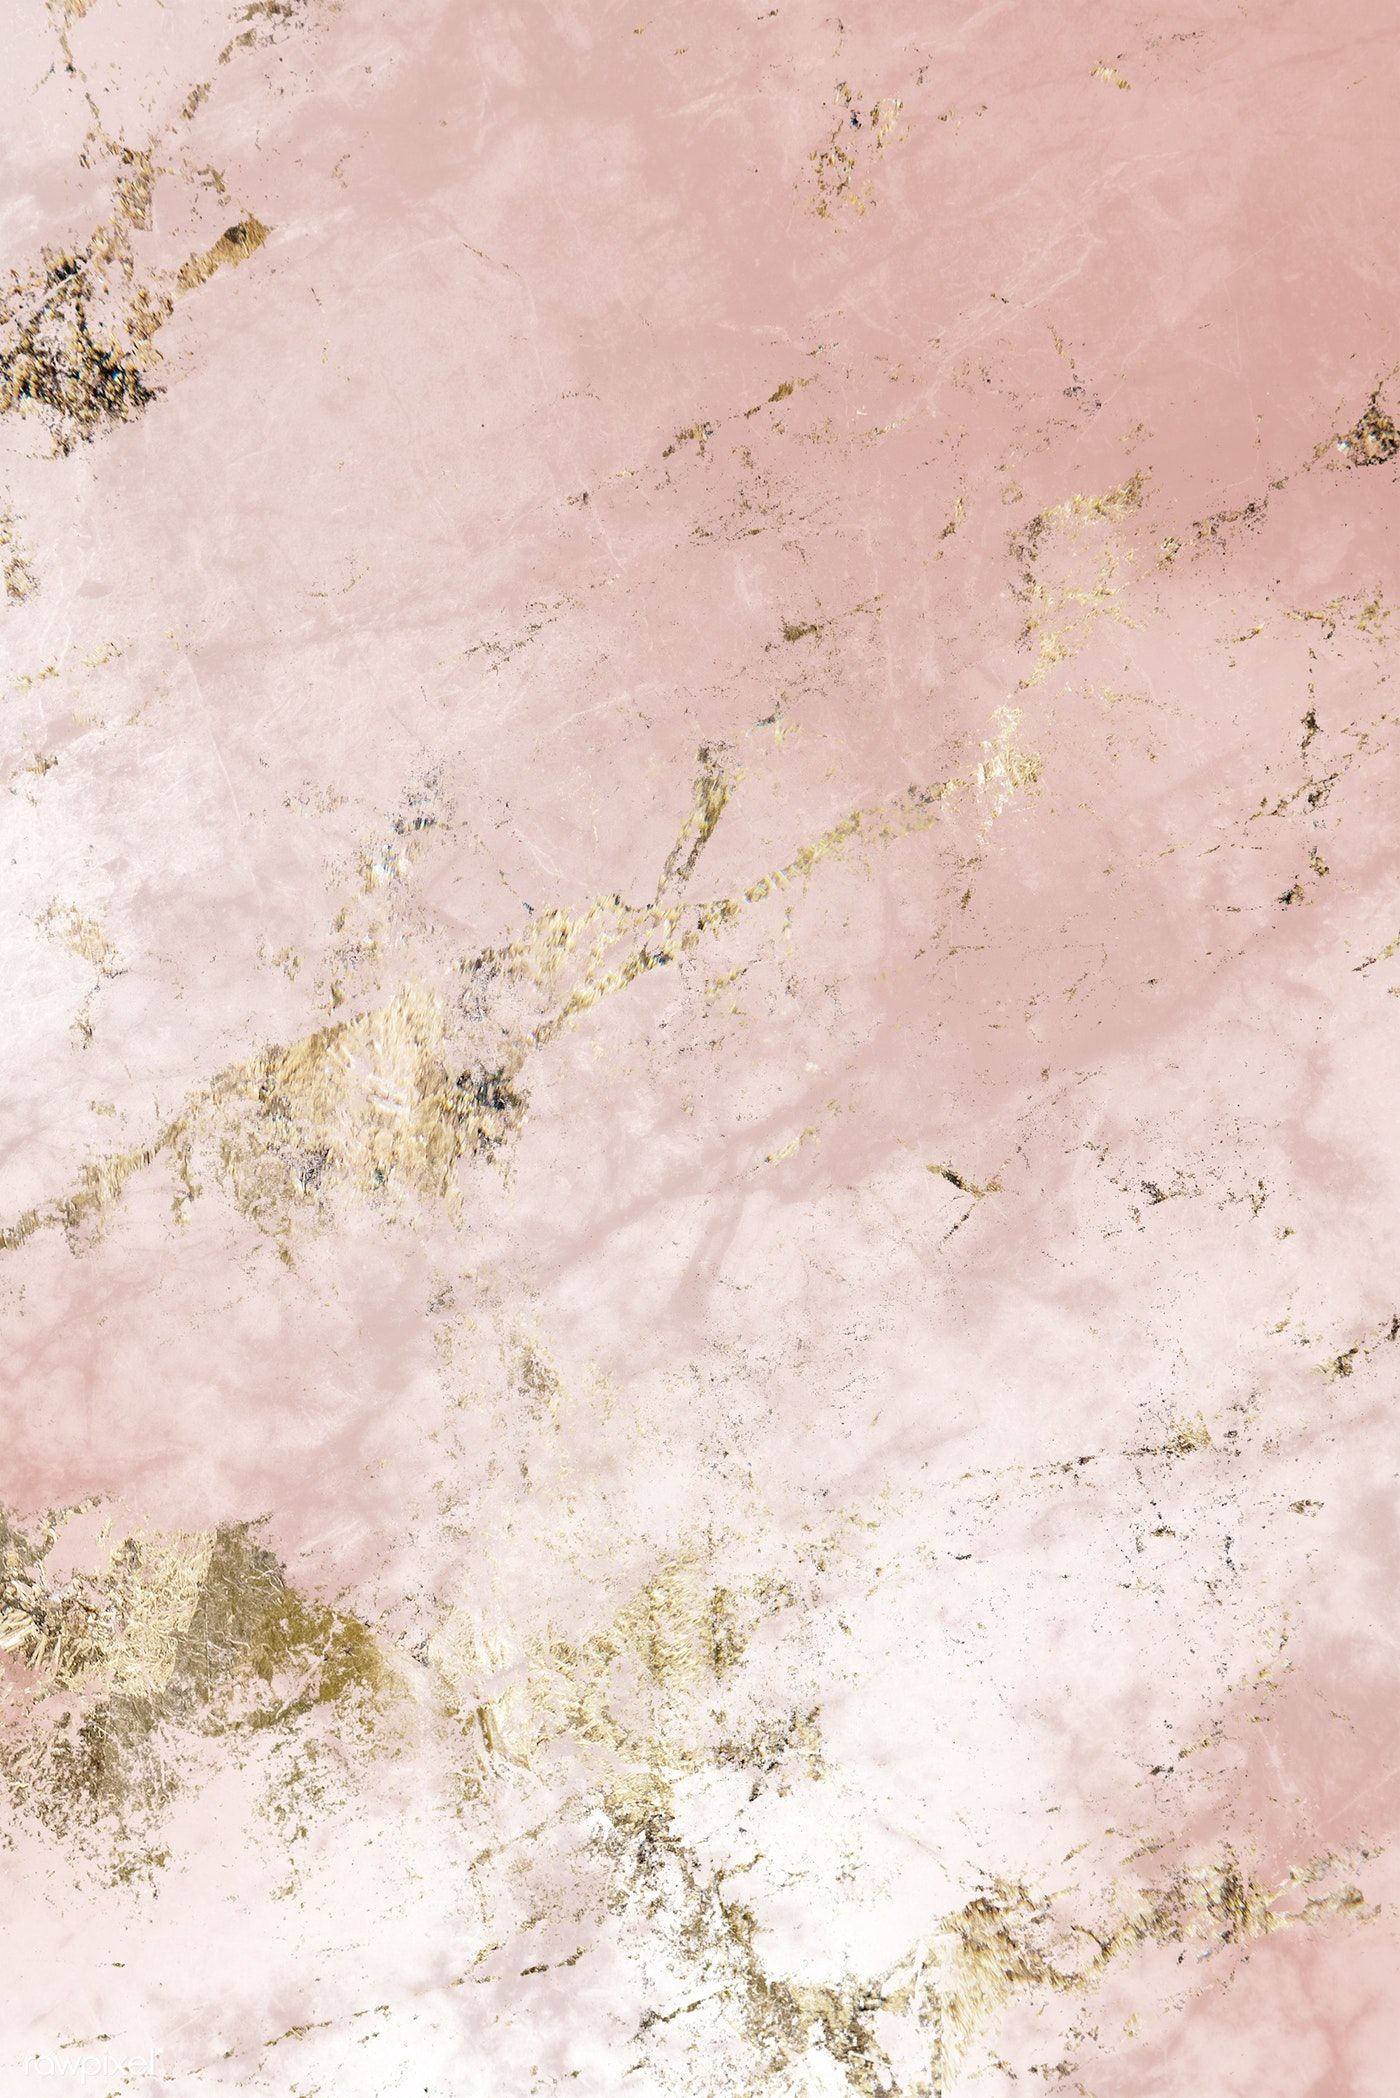 Pink And Gold Marble Textured Background Free Image By Rawpixel Com Chim Pink Marble Background Pink And Gold Wallpaper Pink And Gold Background